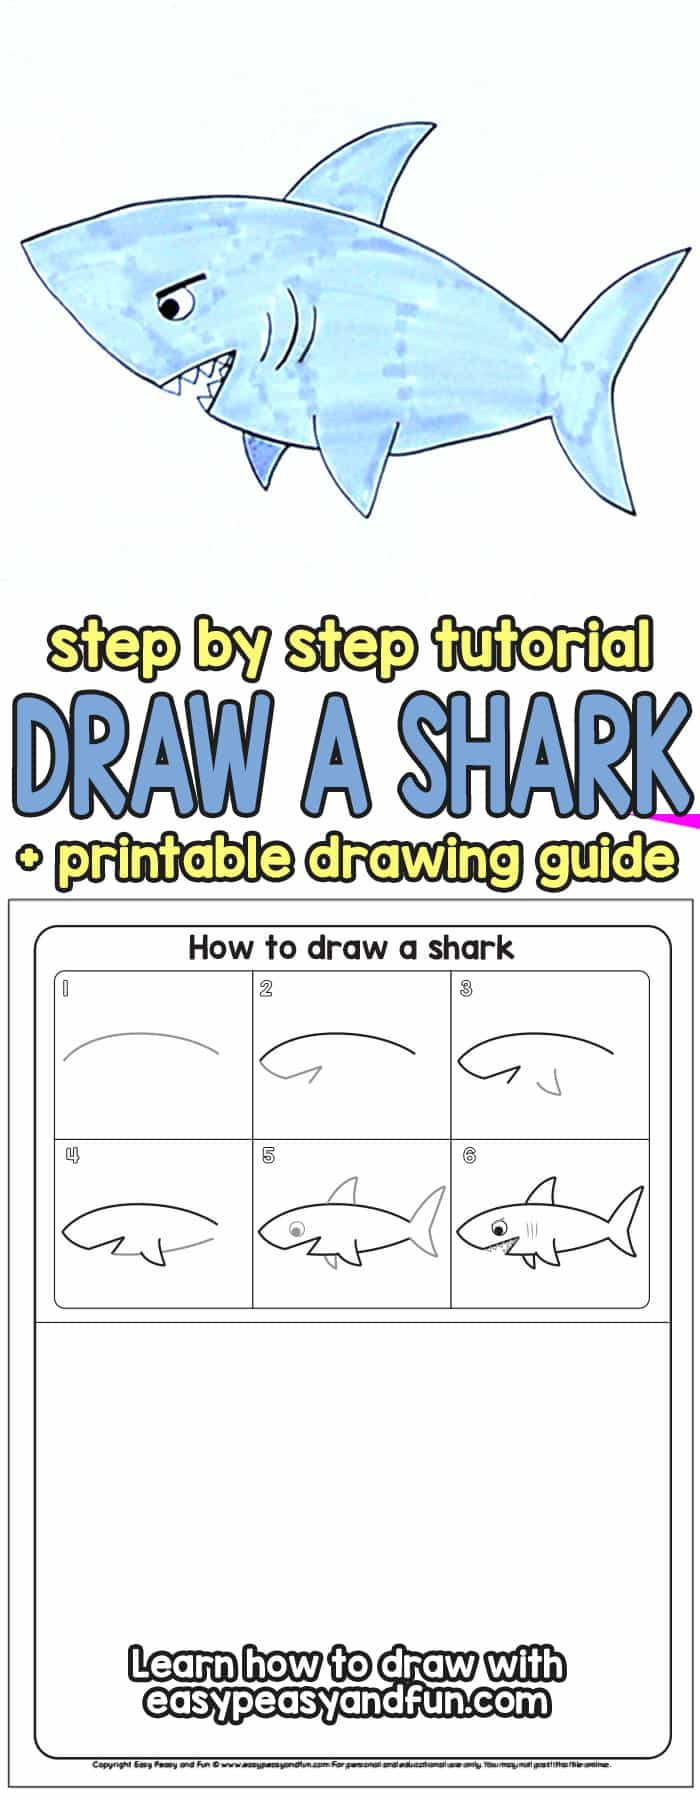 How to Draw a Shark Step by Step Tutorial